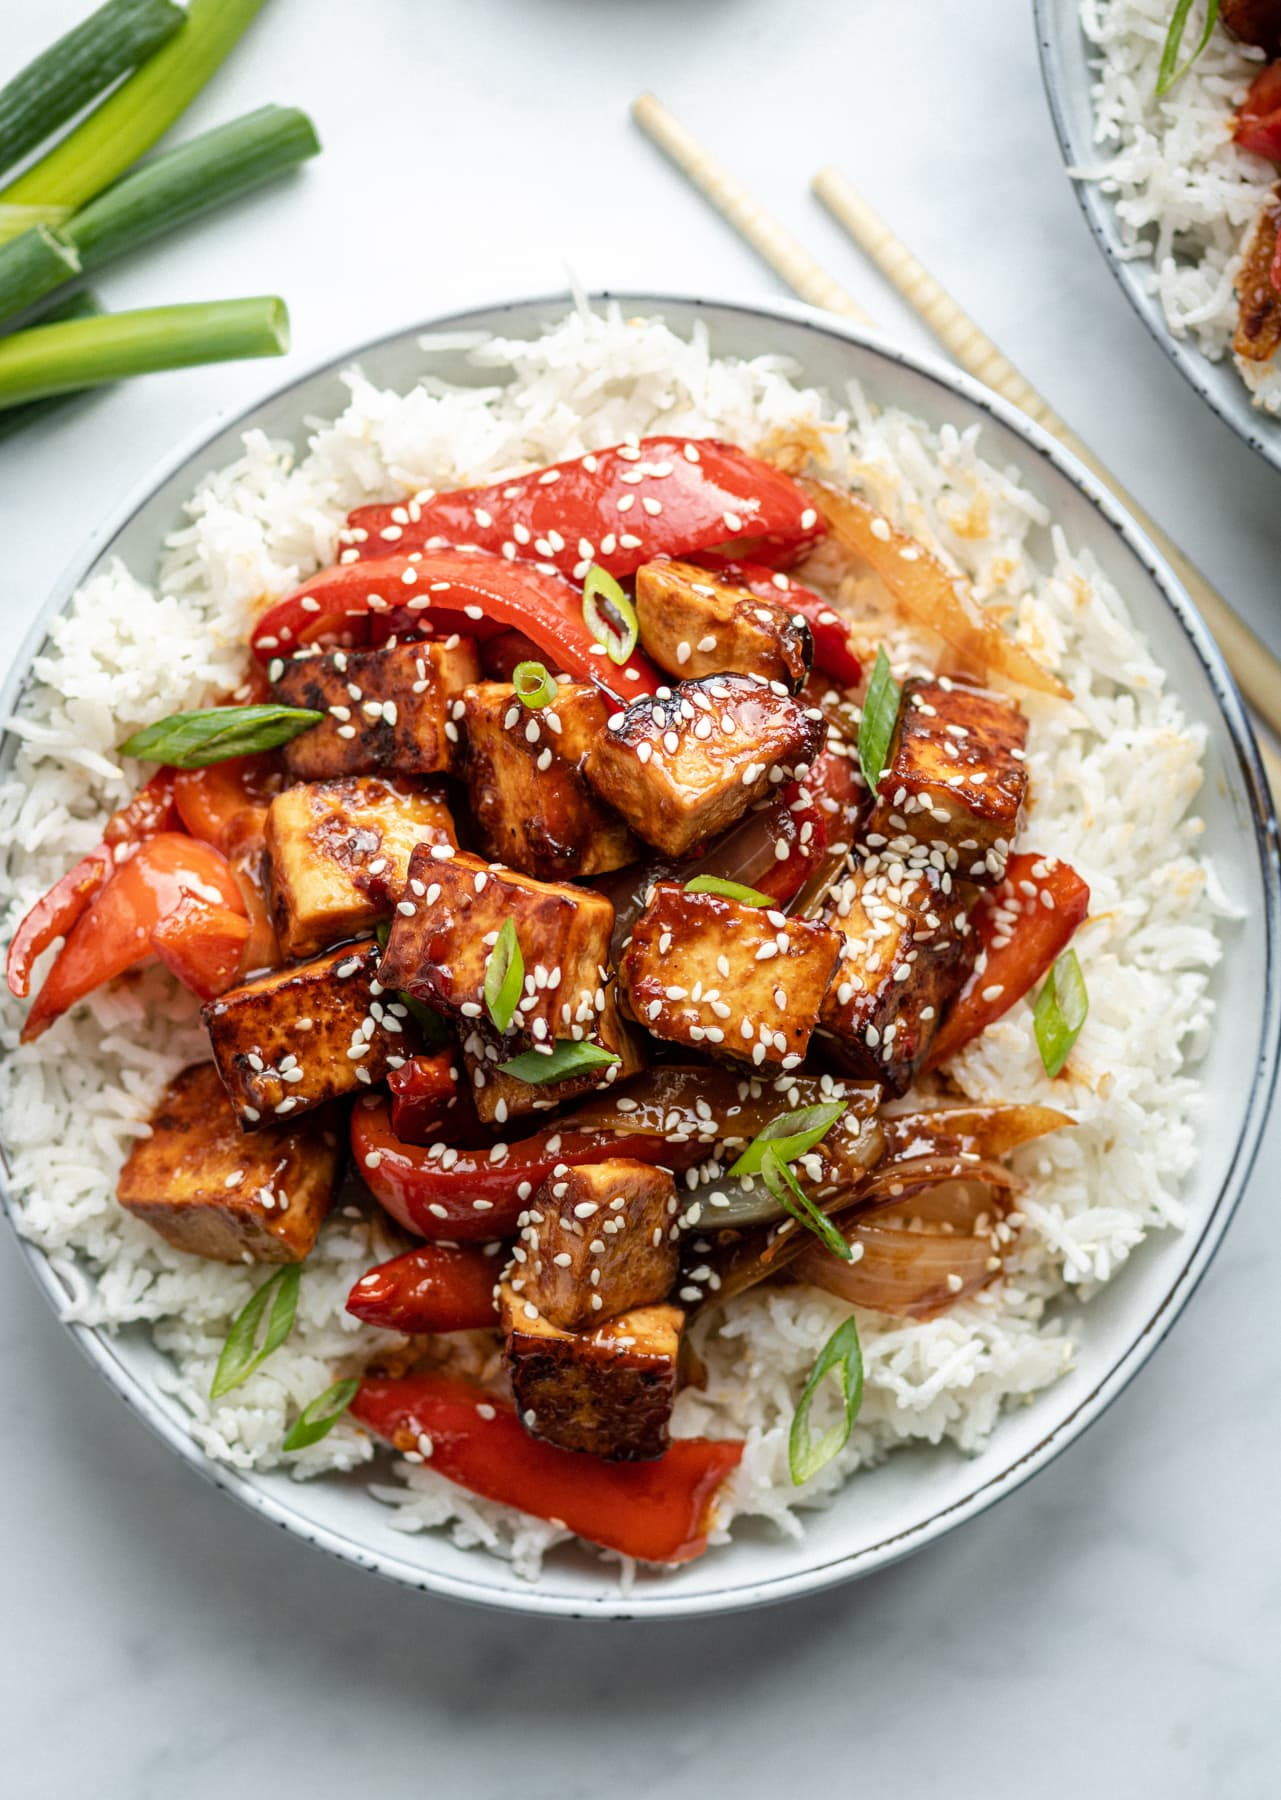 Tofu, peppers and onions, served with white rice